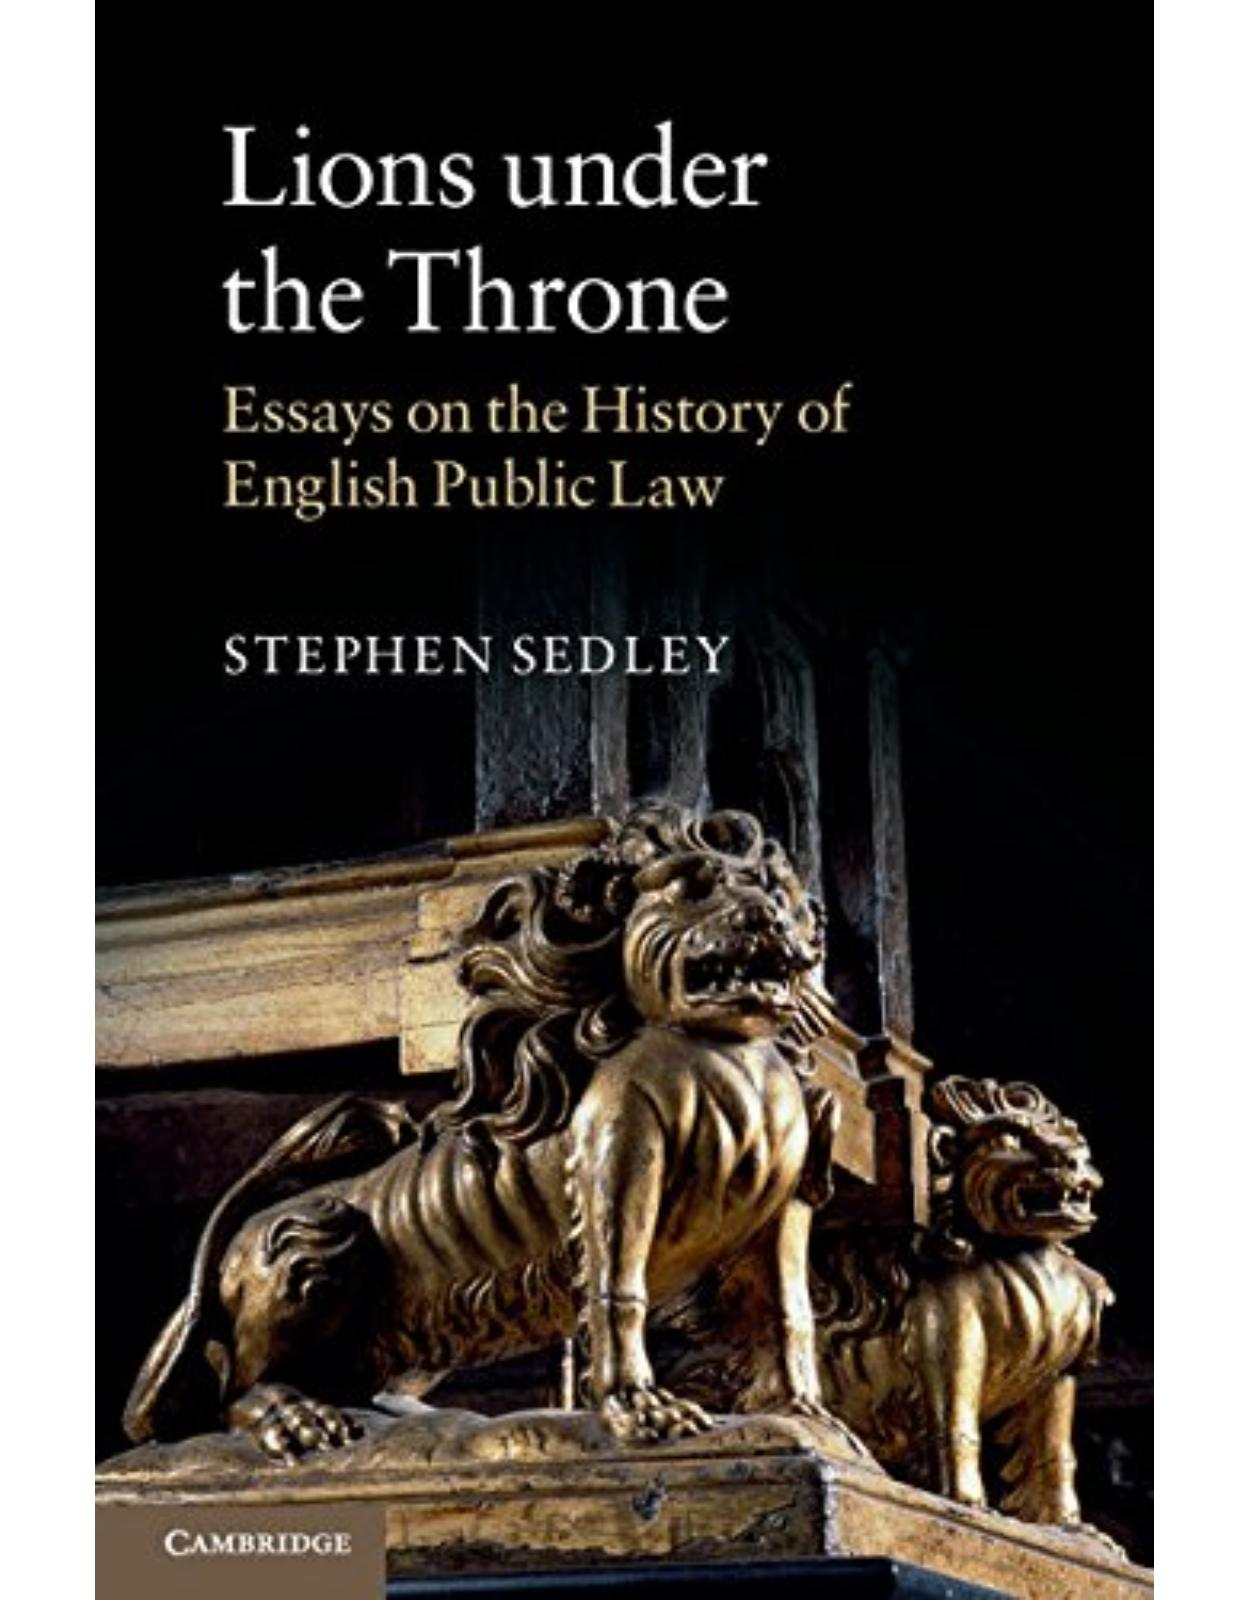 Lions under the Throne: Essays on the History of English Public Law